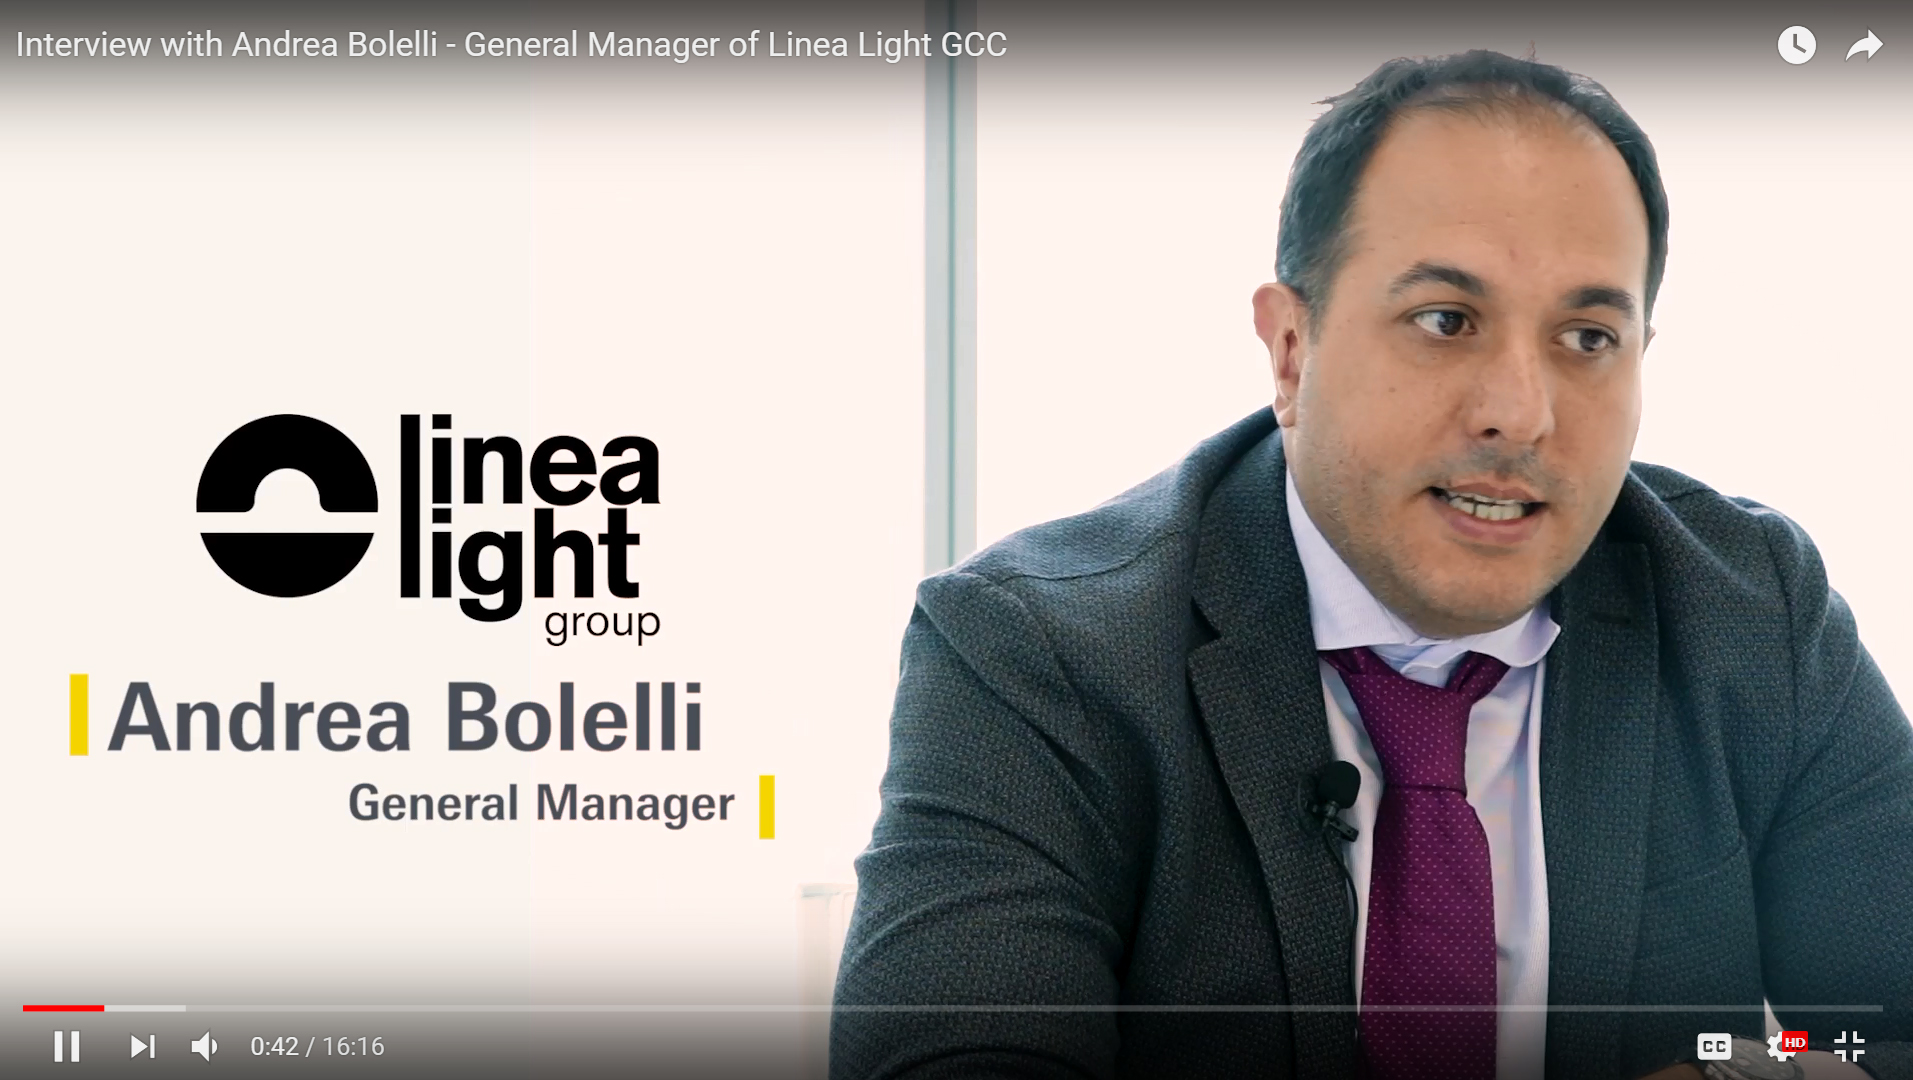 Interview with Andrea Bolelli - General Manager of Linea Light GCC